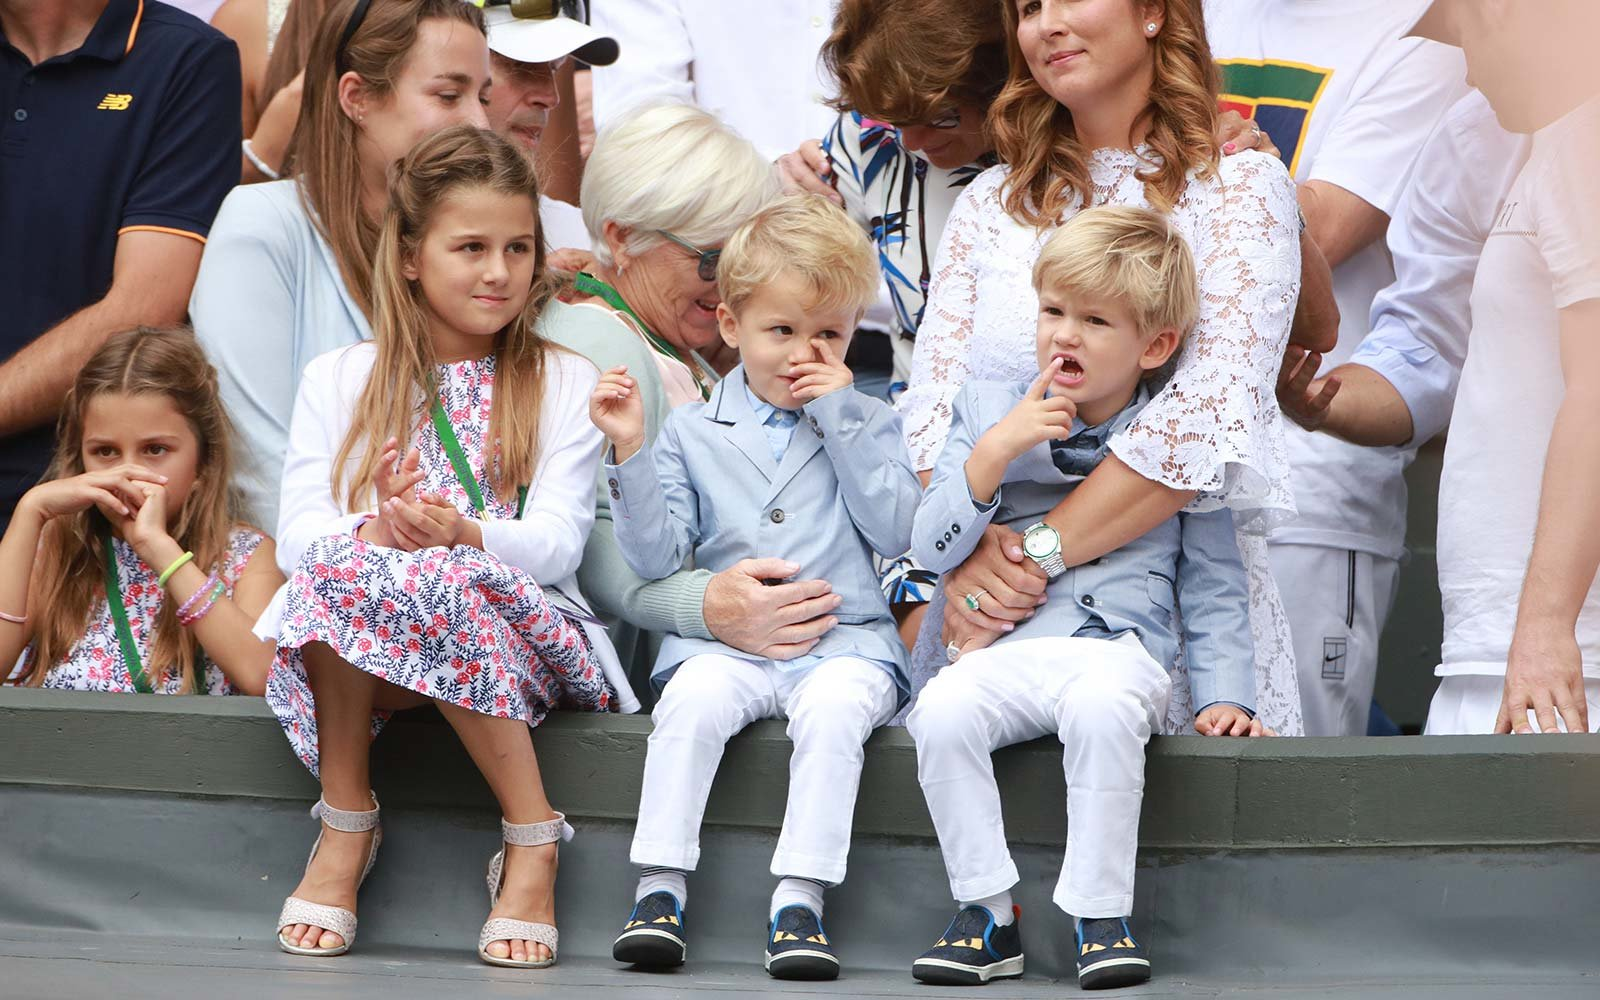 Roger Federer's wife Mirka Federer and their four children, identical twin daughters Myla and Charlene, 7, and identical 3-year-old twin sons Leo and Lenny, cheer from the stands at Wimbledon tennis